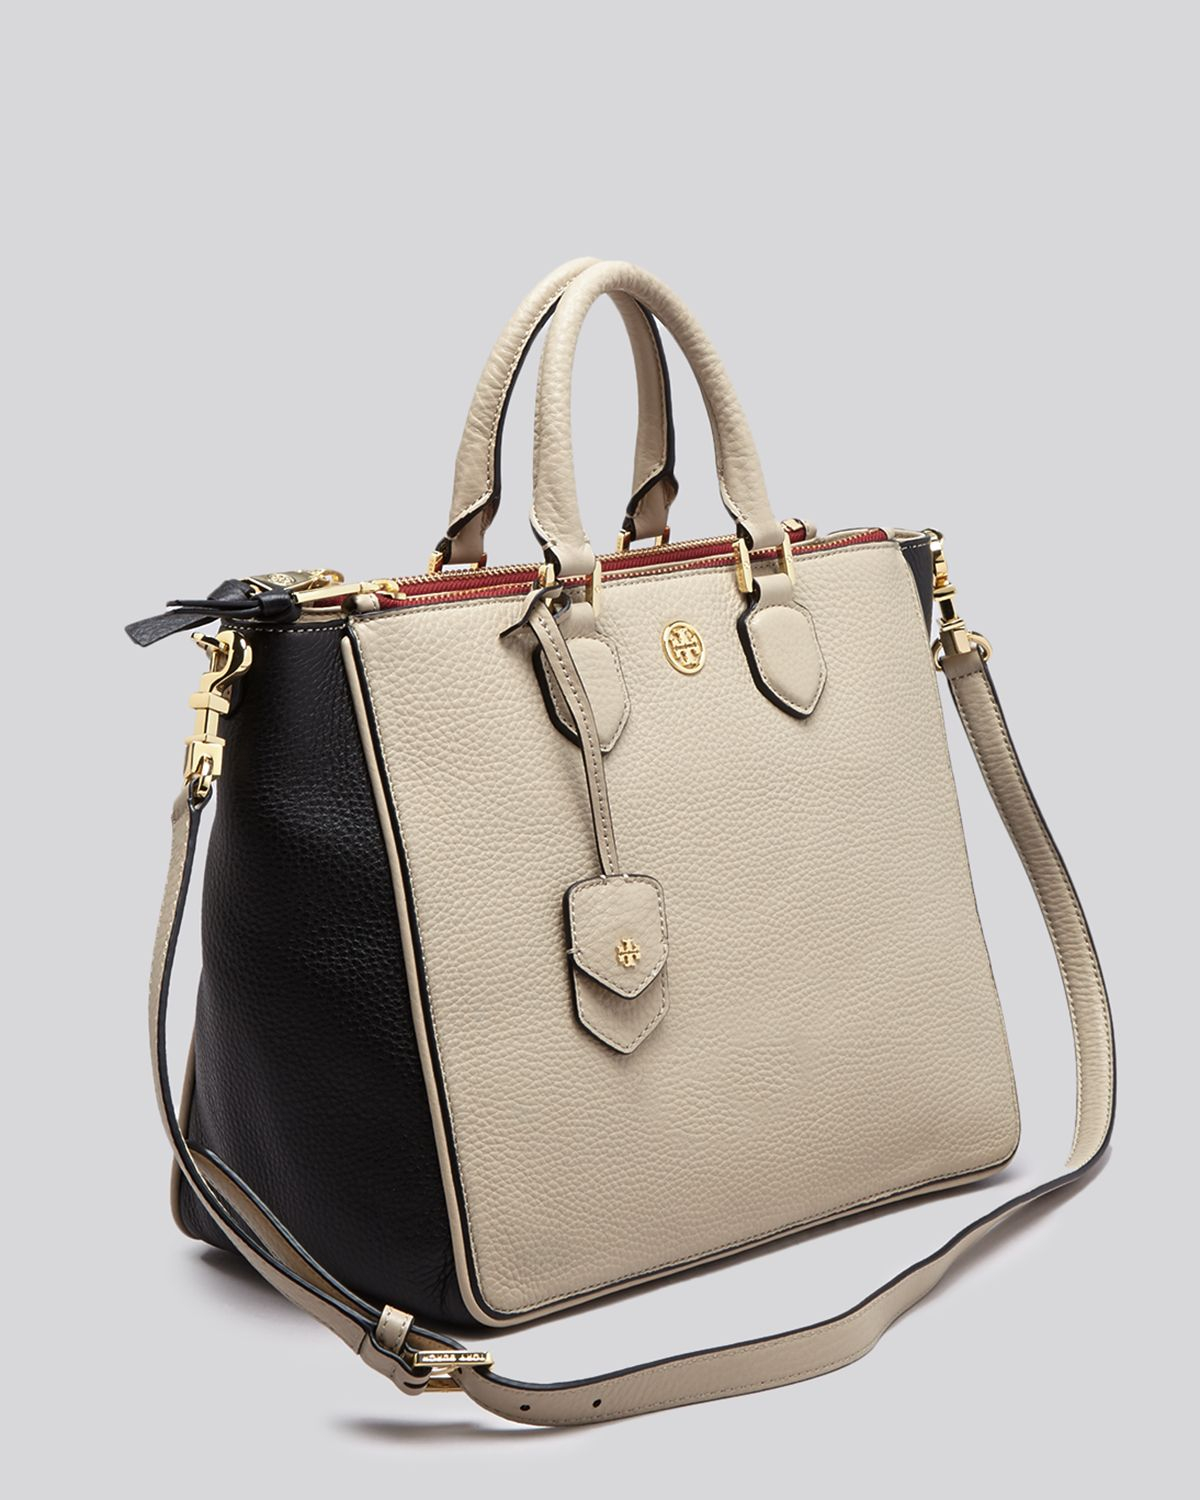 5f0df253783 Lyst - Tory Burch Tote - Robinson Pebbled Colorblock Square in Natural